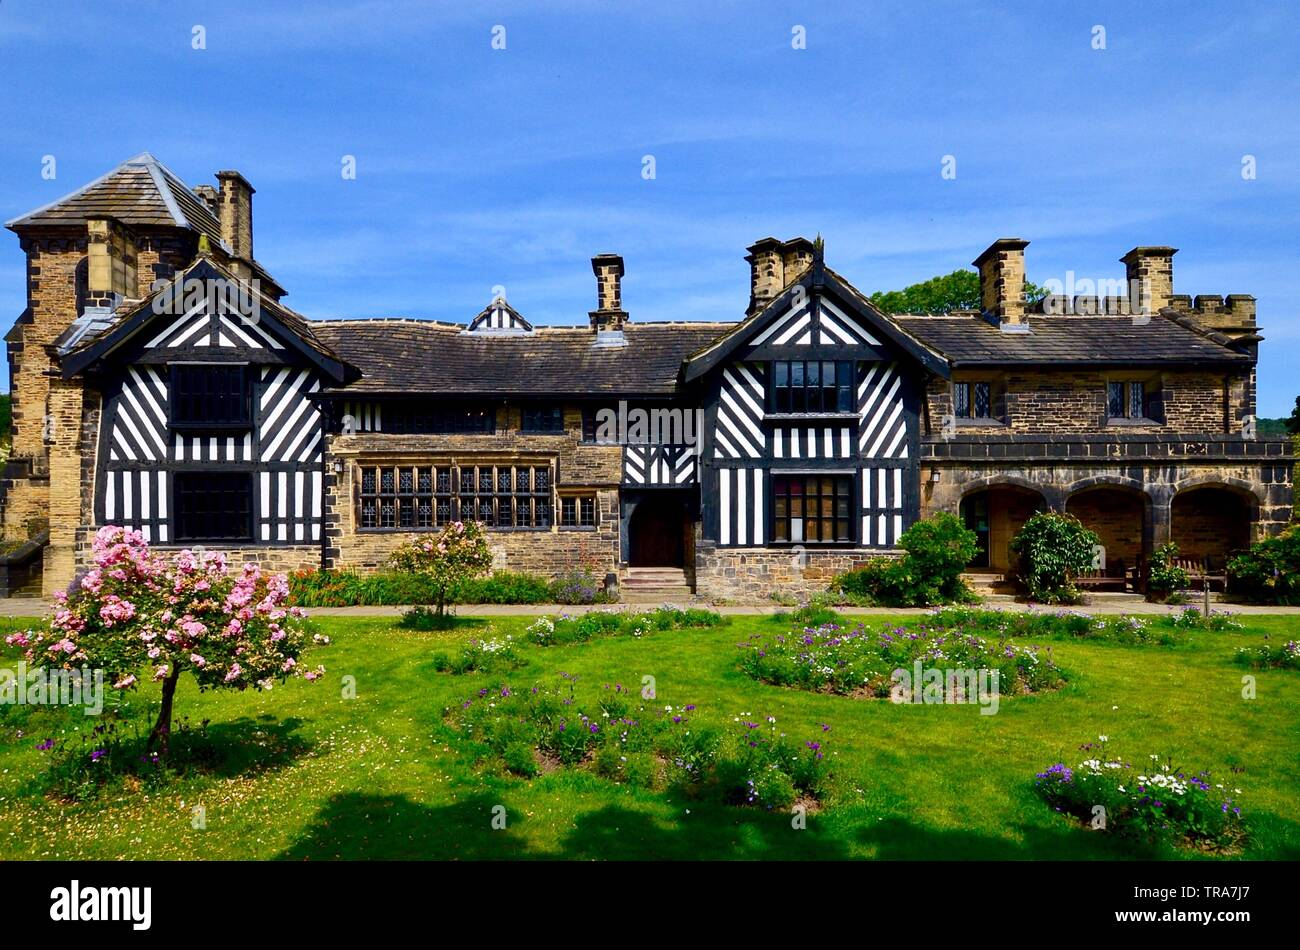 Shibden Hall in Halifax was the home to the famous Lister family for several hundred years. - Stock Image